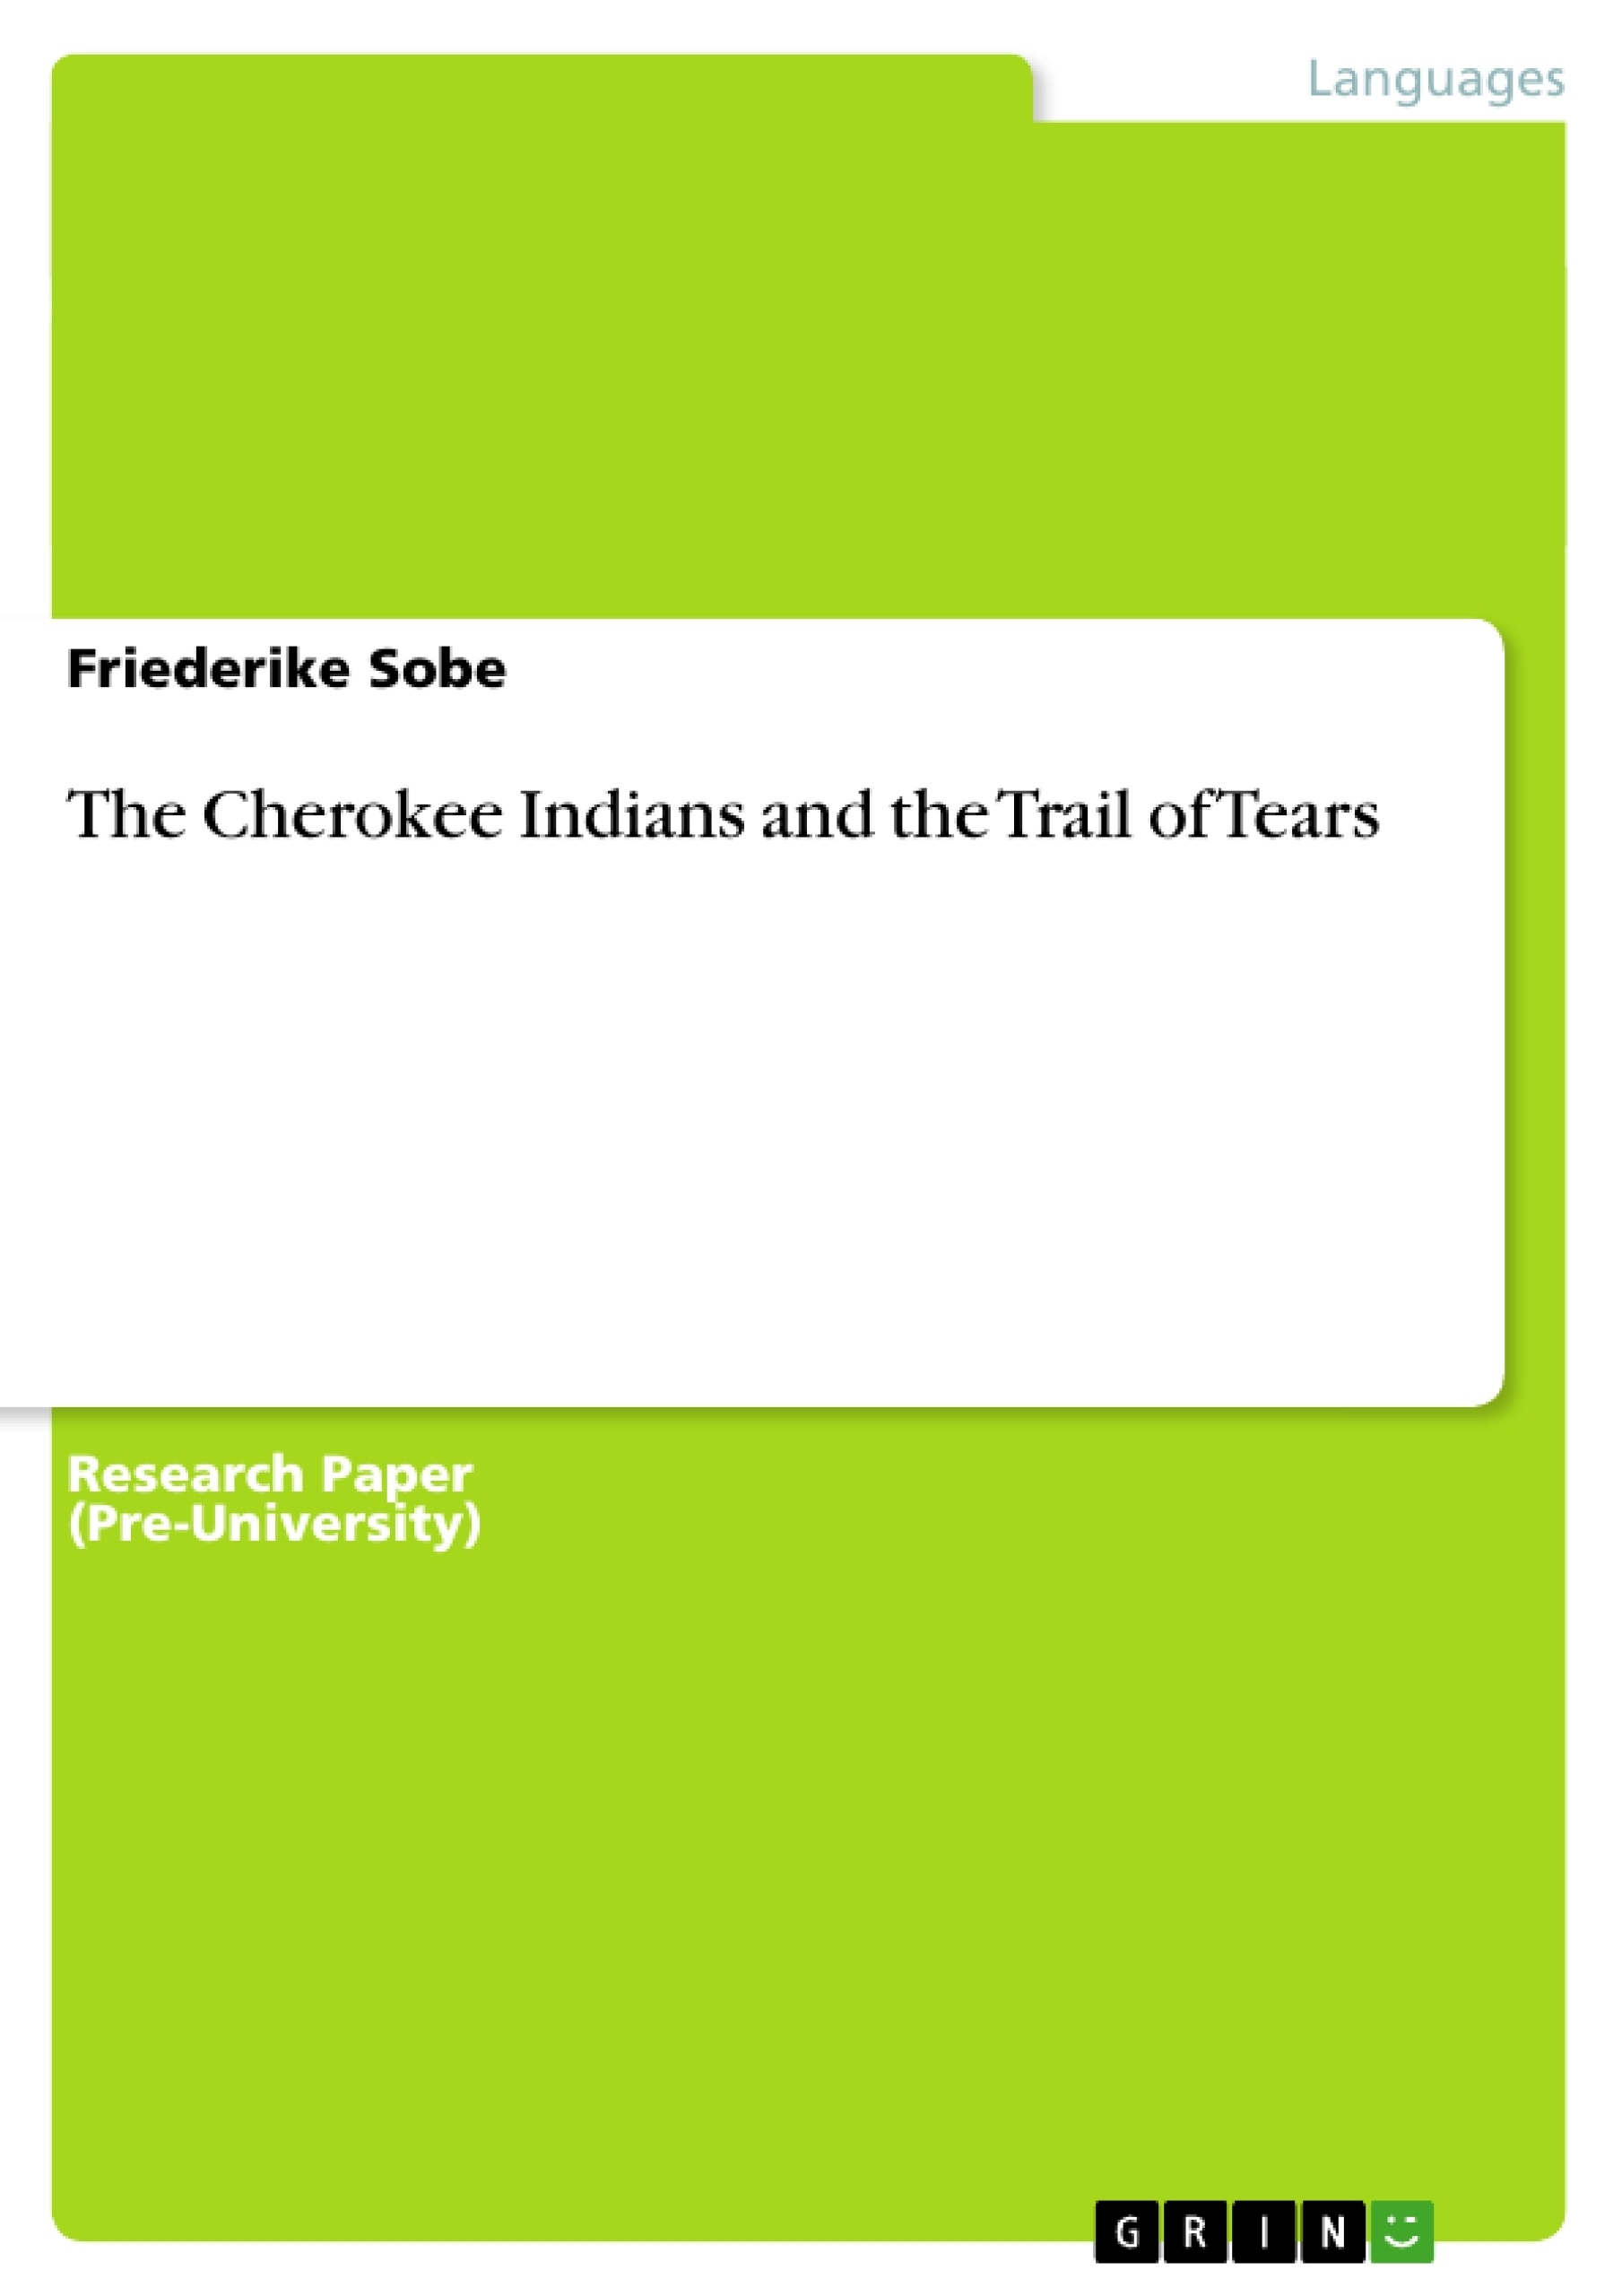 the cherokee ns and the trail of tears publish your the cherokee ns and the trail of tears publish your master s thesis bachelor s thesis essay or term paper